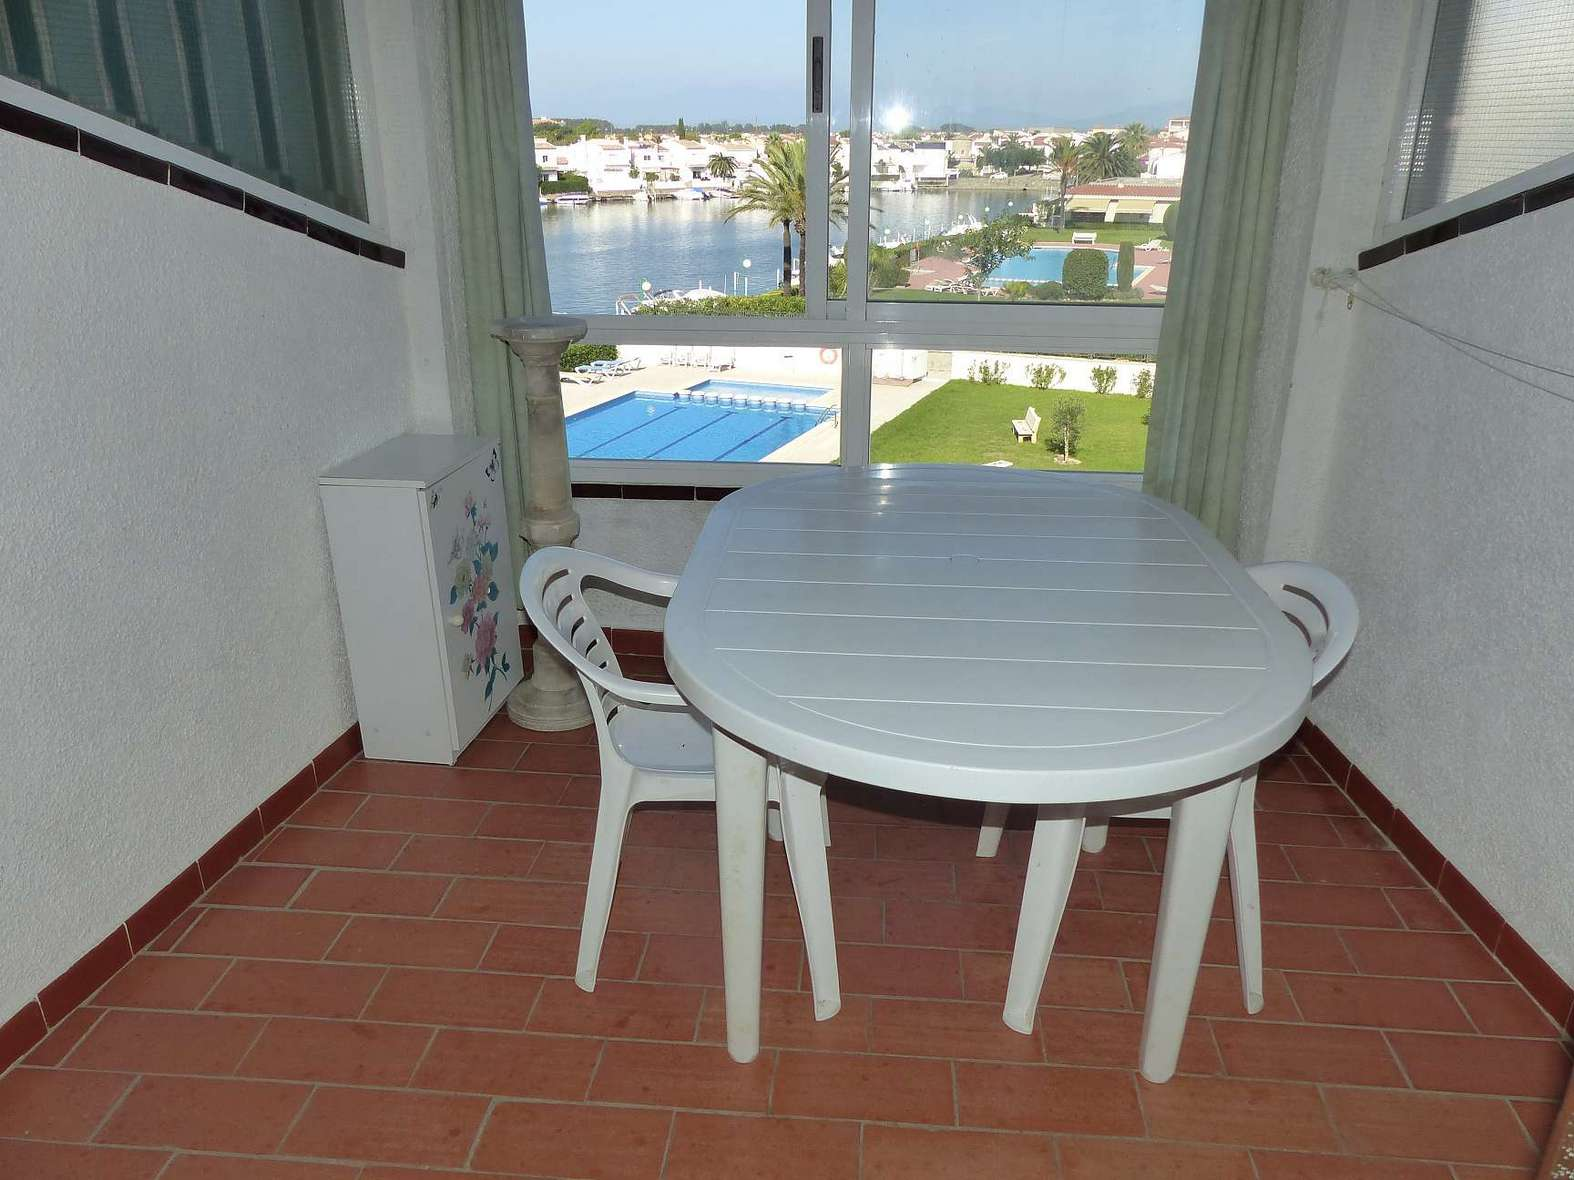 Nice apartment with swimming pool and canal view